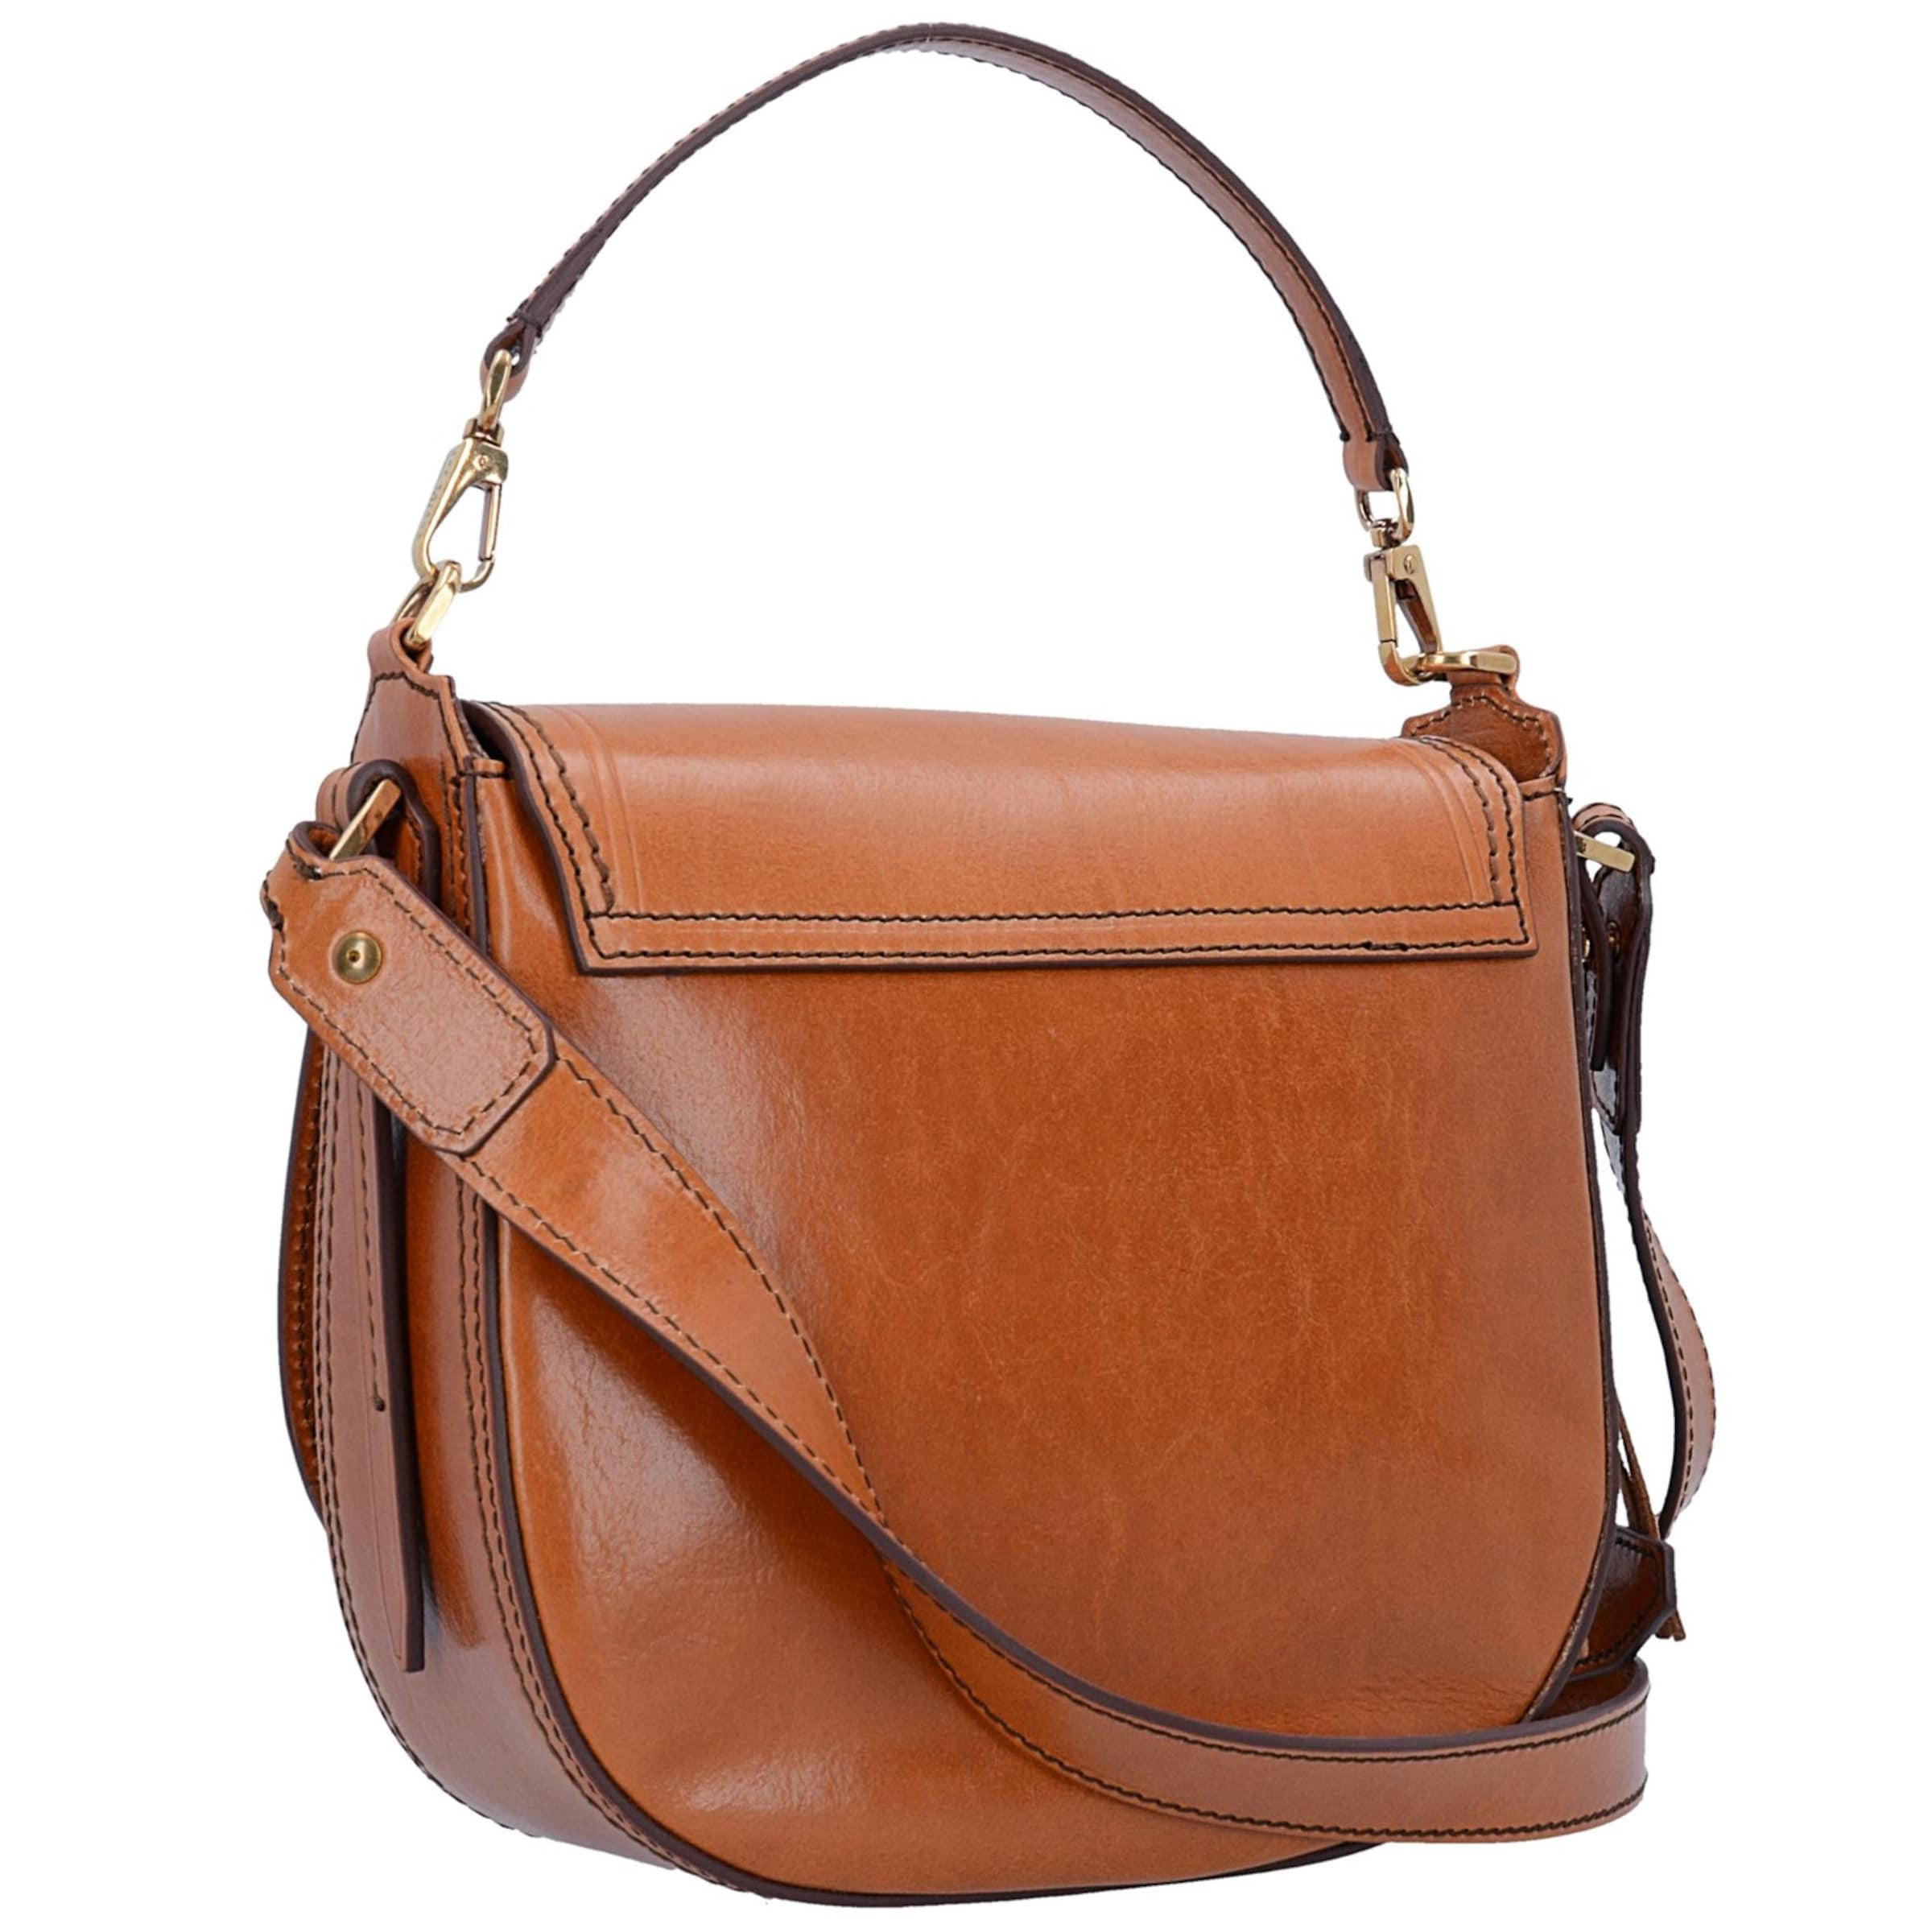 Handtasche Braun Bridge Cm Leder 23 The Pearldistrict In zLqSVpUMG